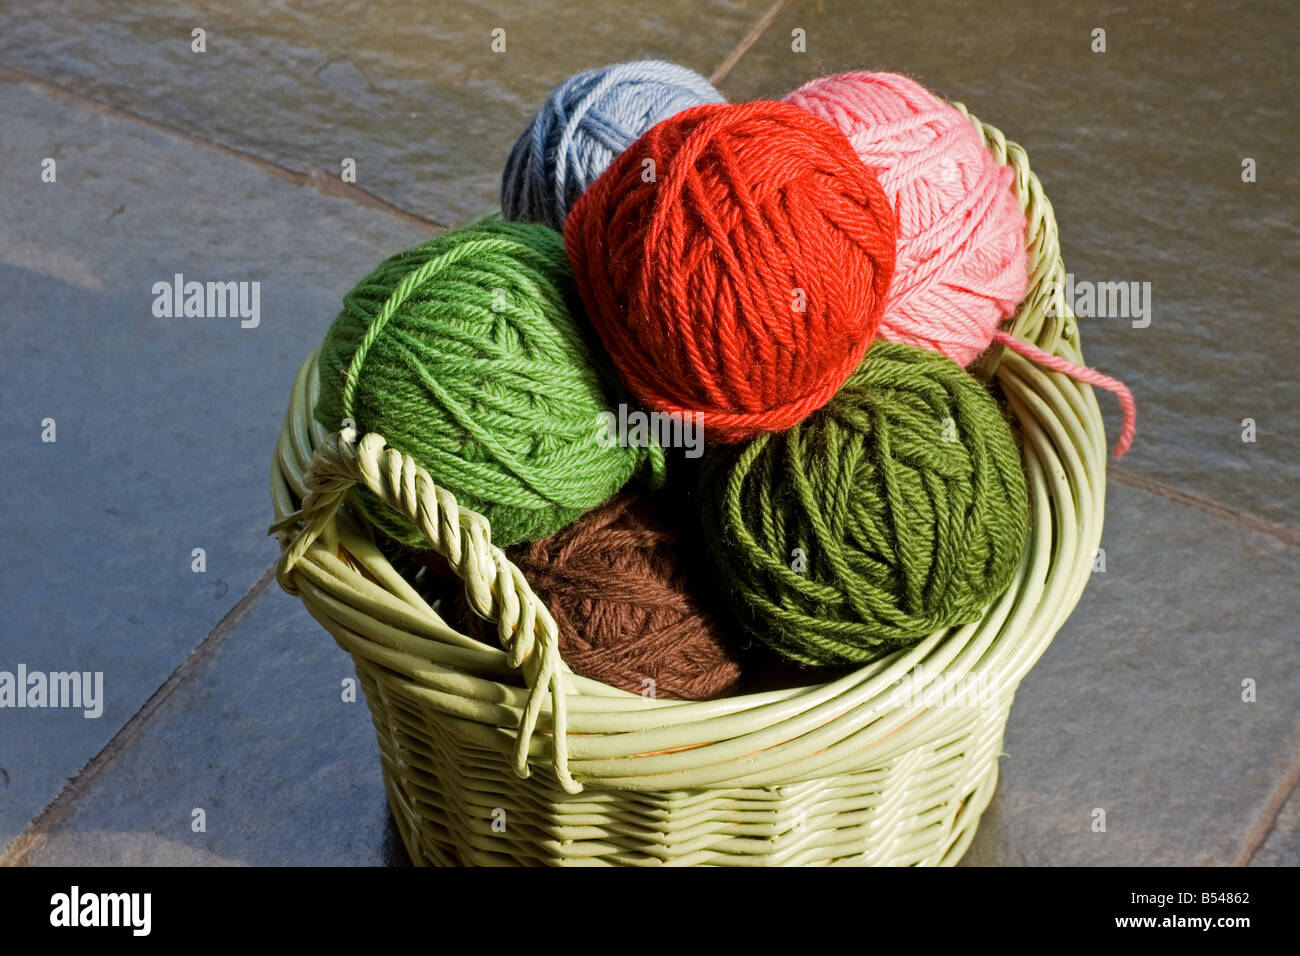 Multicolored skeins of wool in a green basket - Stock Image